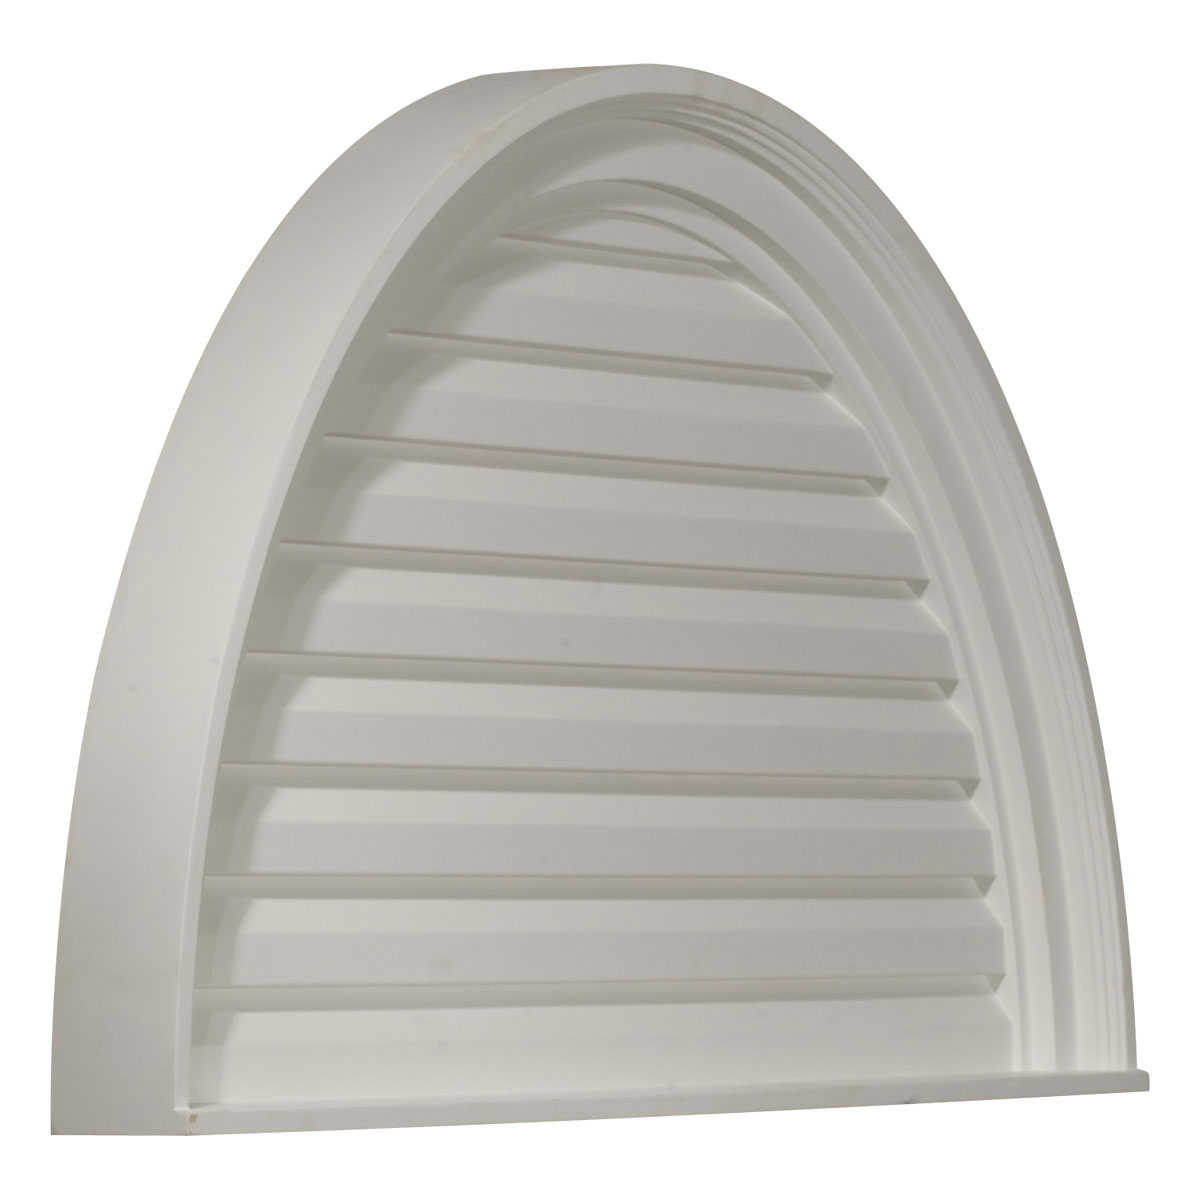 36'W x 18'H x 2 5/8'P, Half Round Gable Vent Louver, Decorative